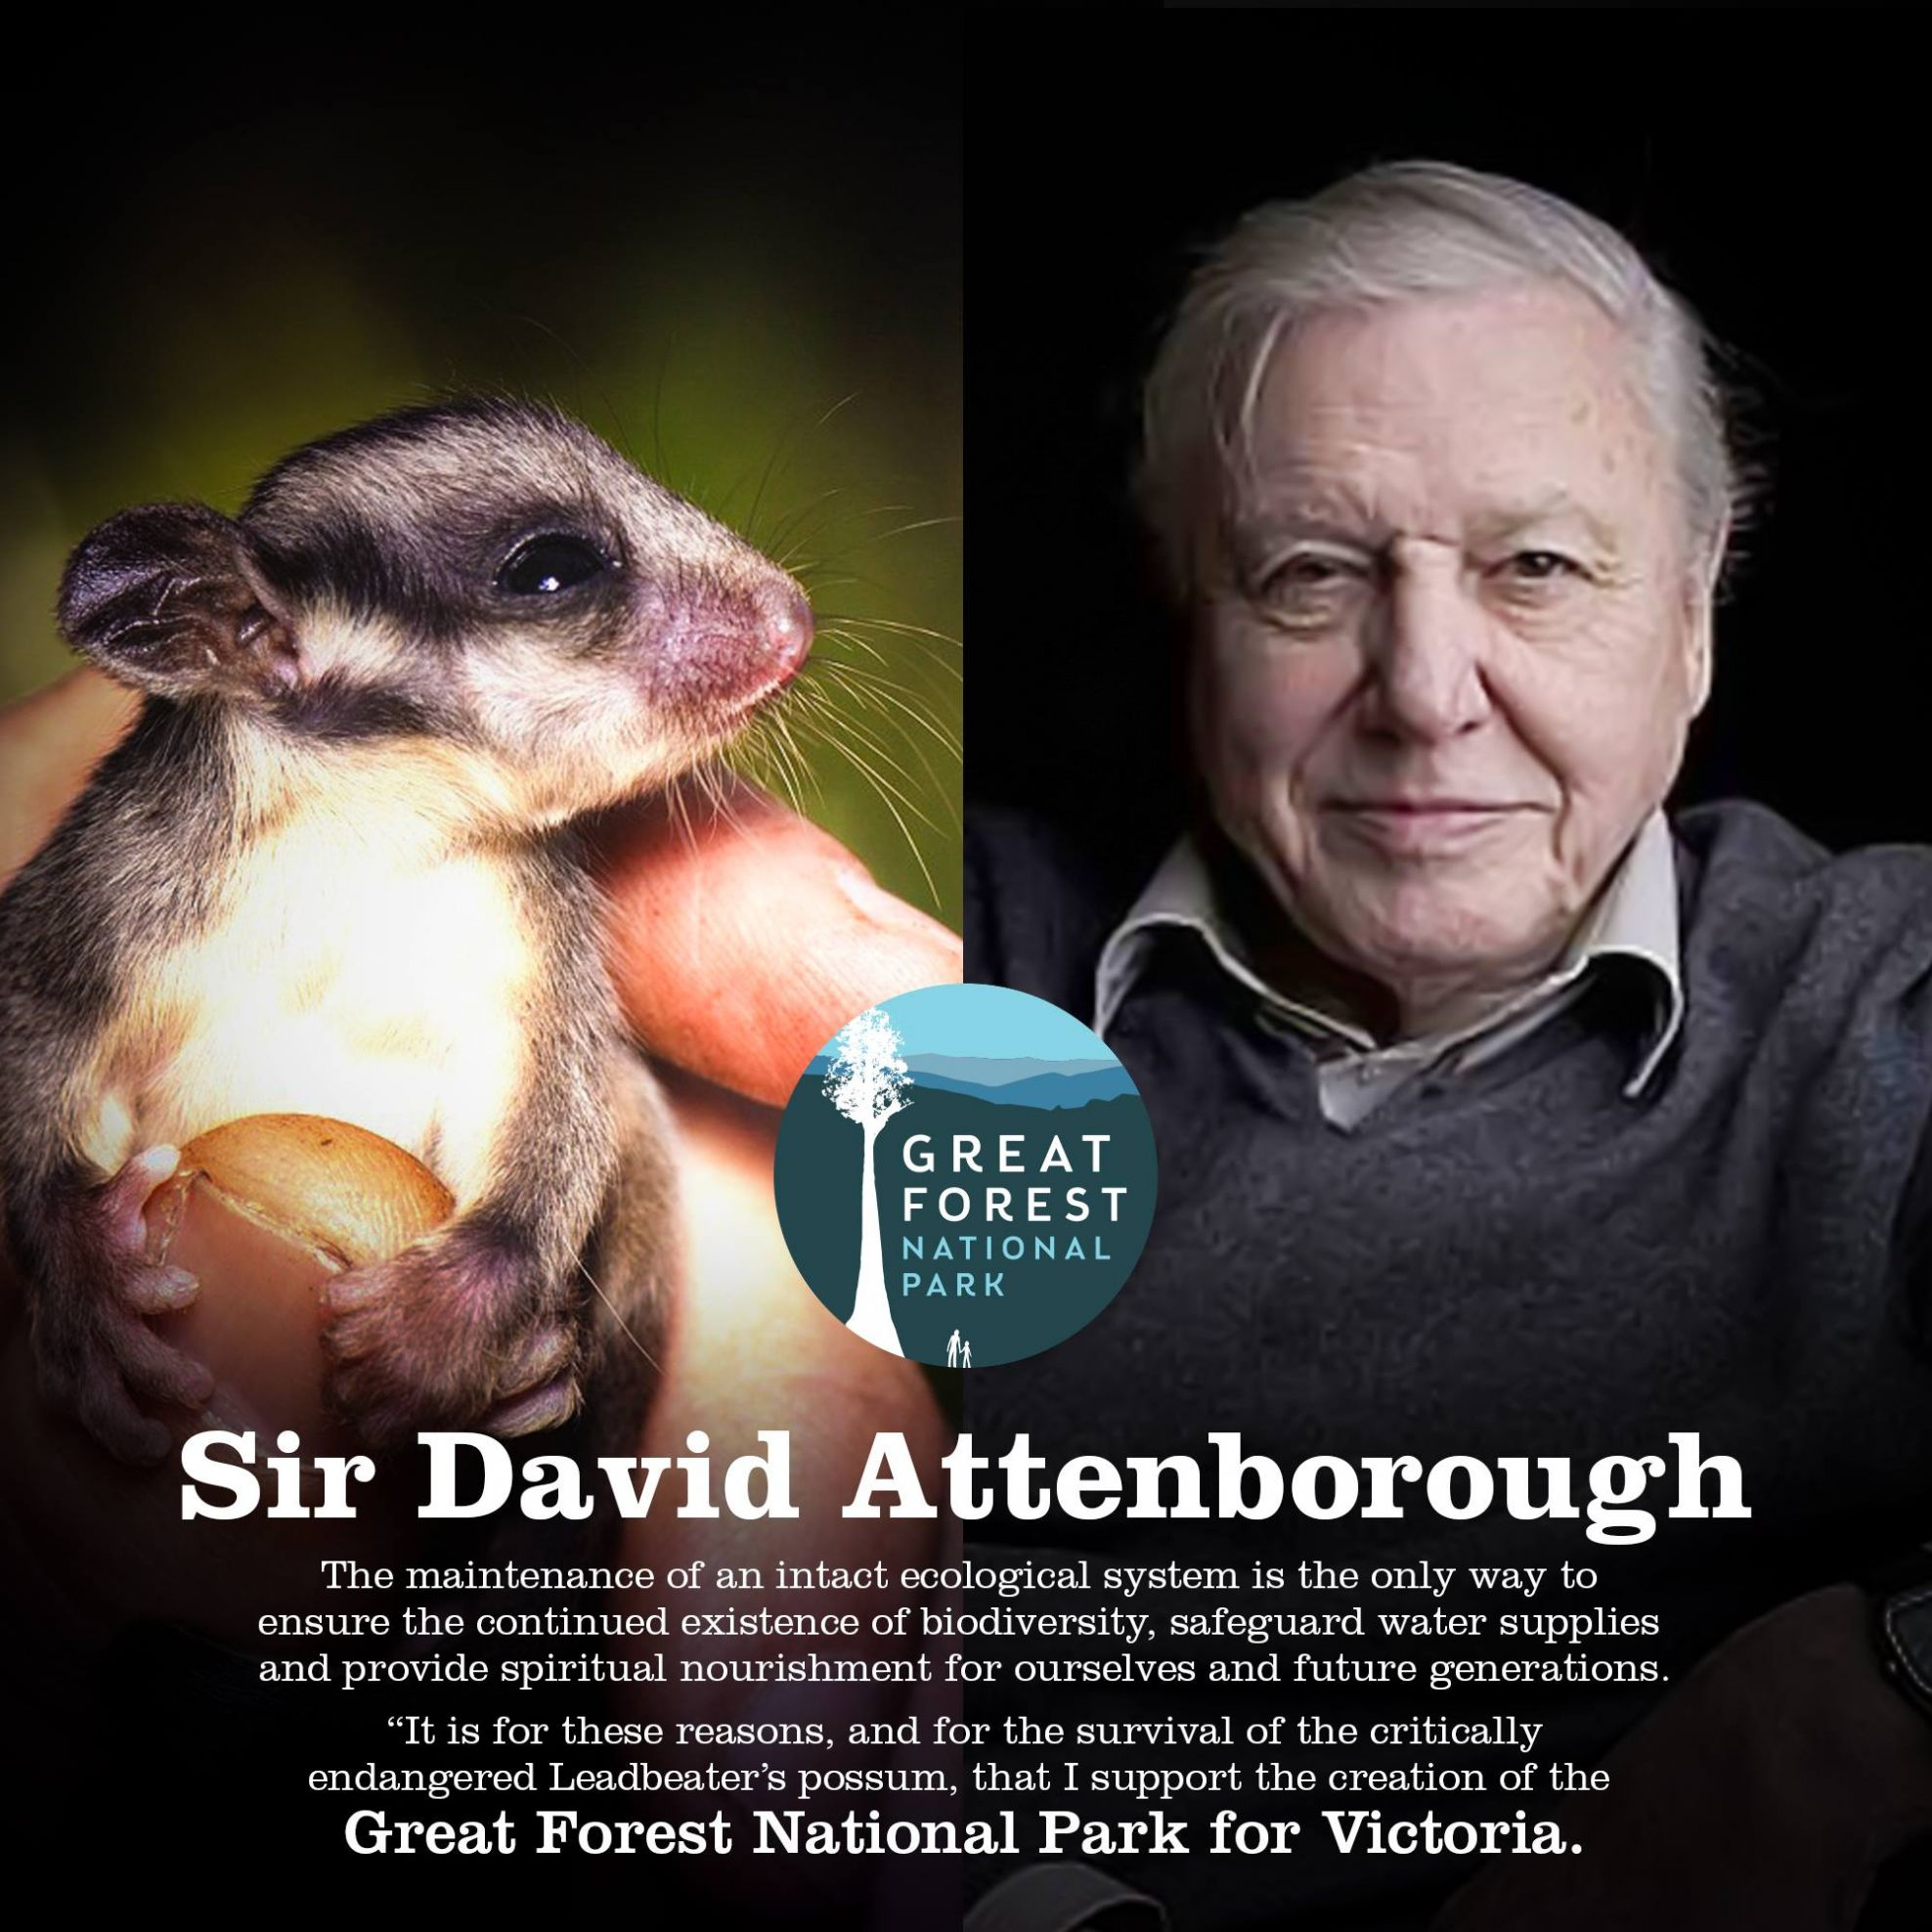 David Attenborough supports creating the Great Forest National Park